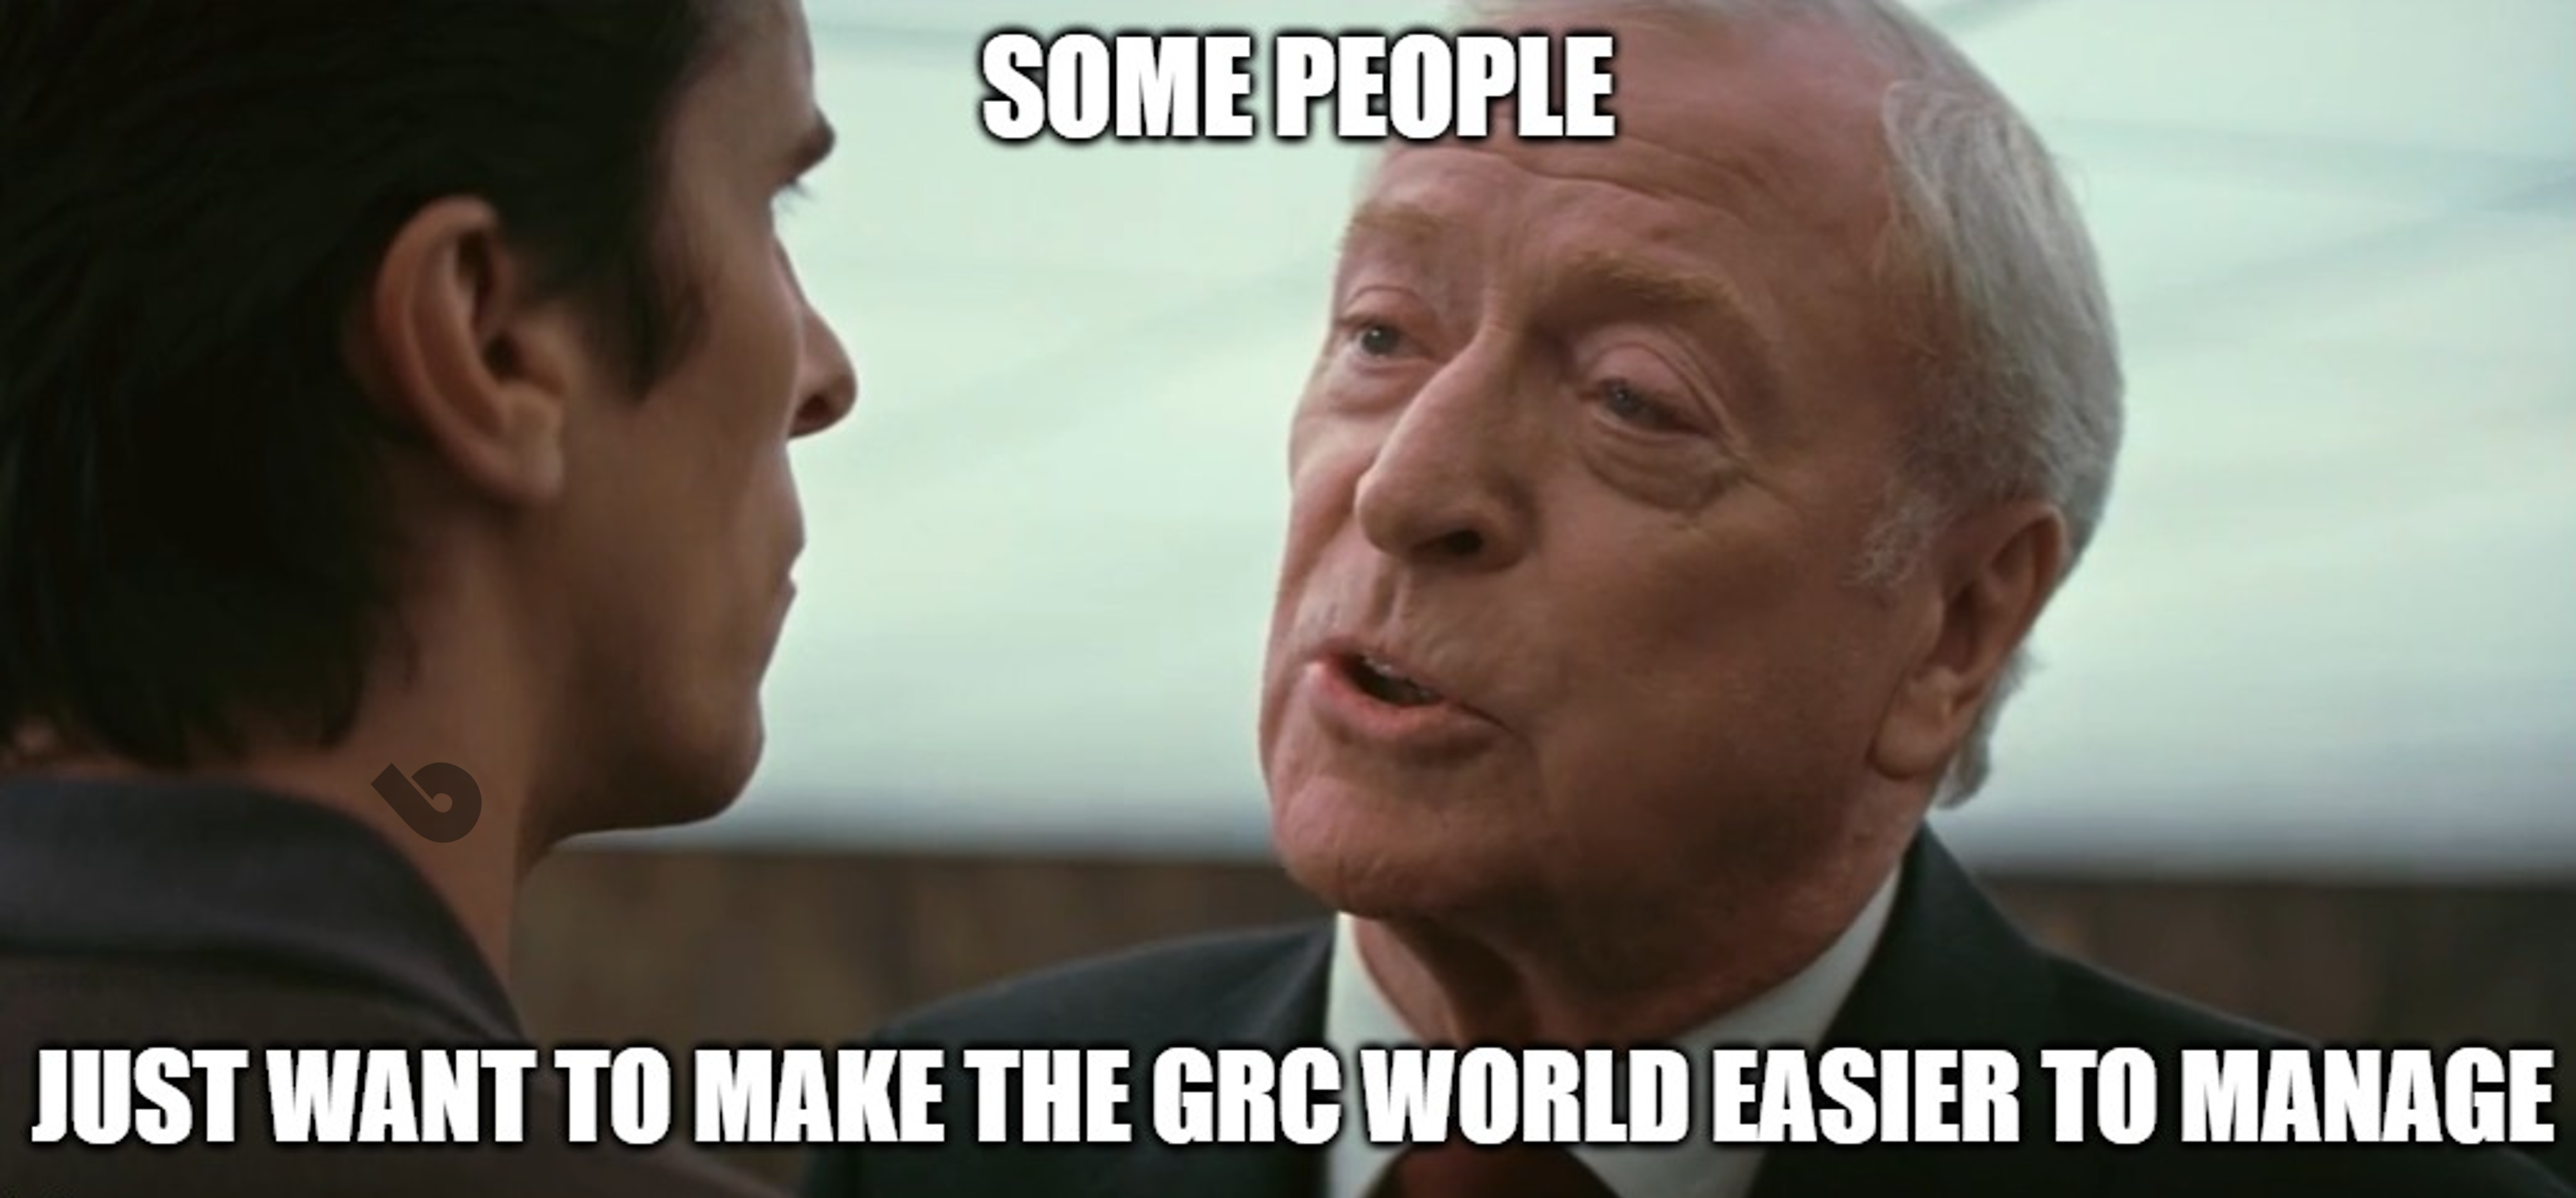 some people wanna make GRC easier-png